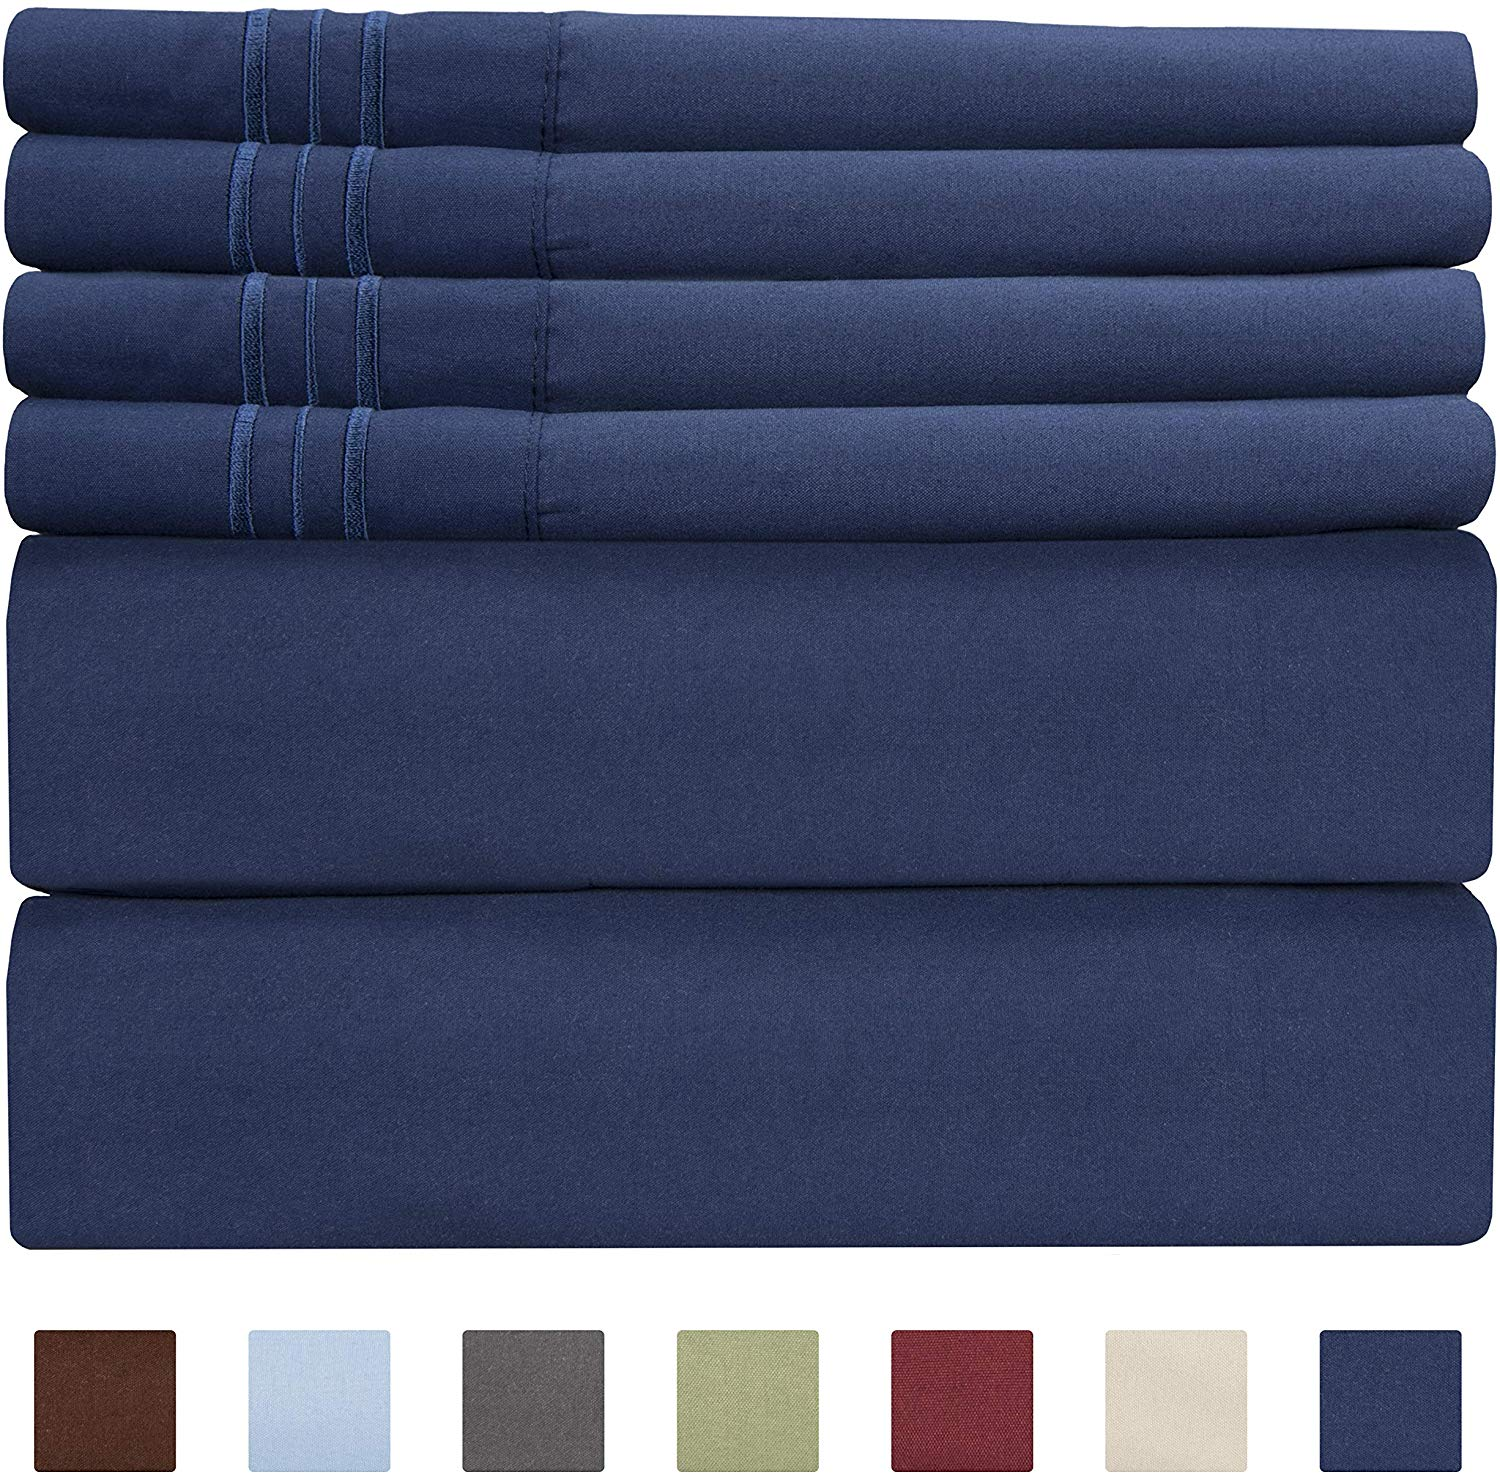 CGK Unlimited Queen Size Sheet Set | Softest Sheets